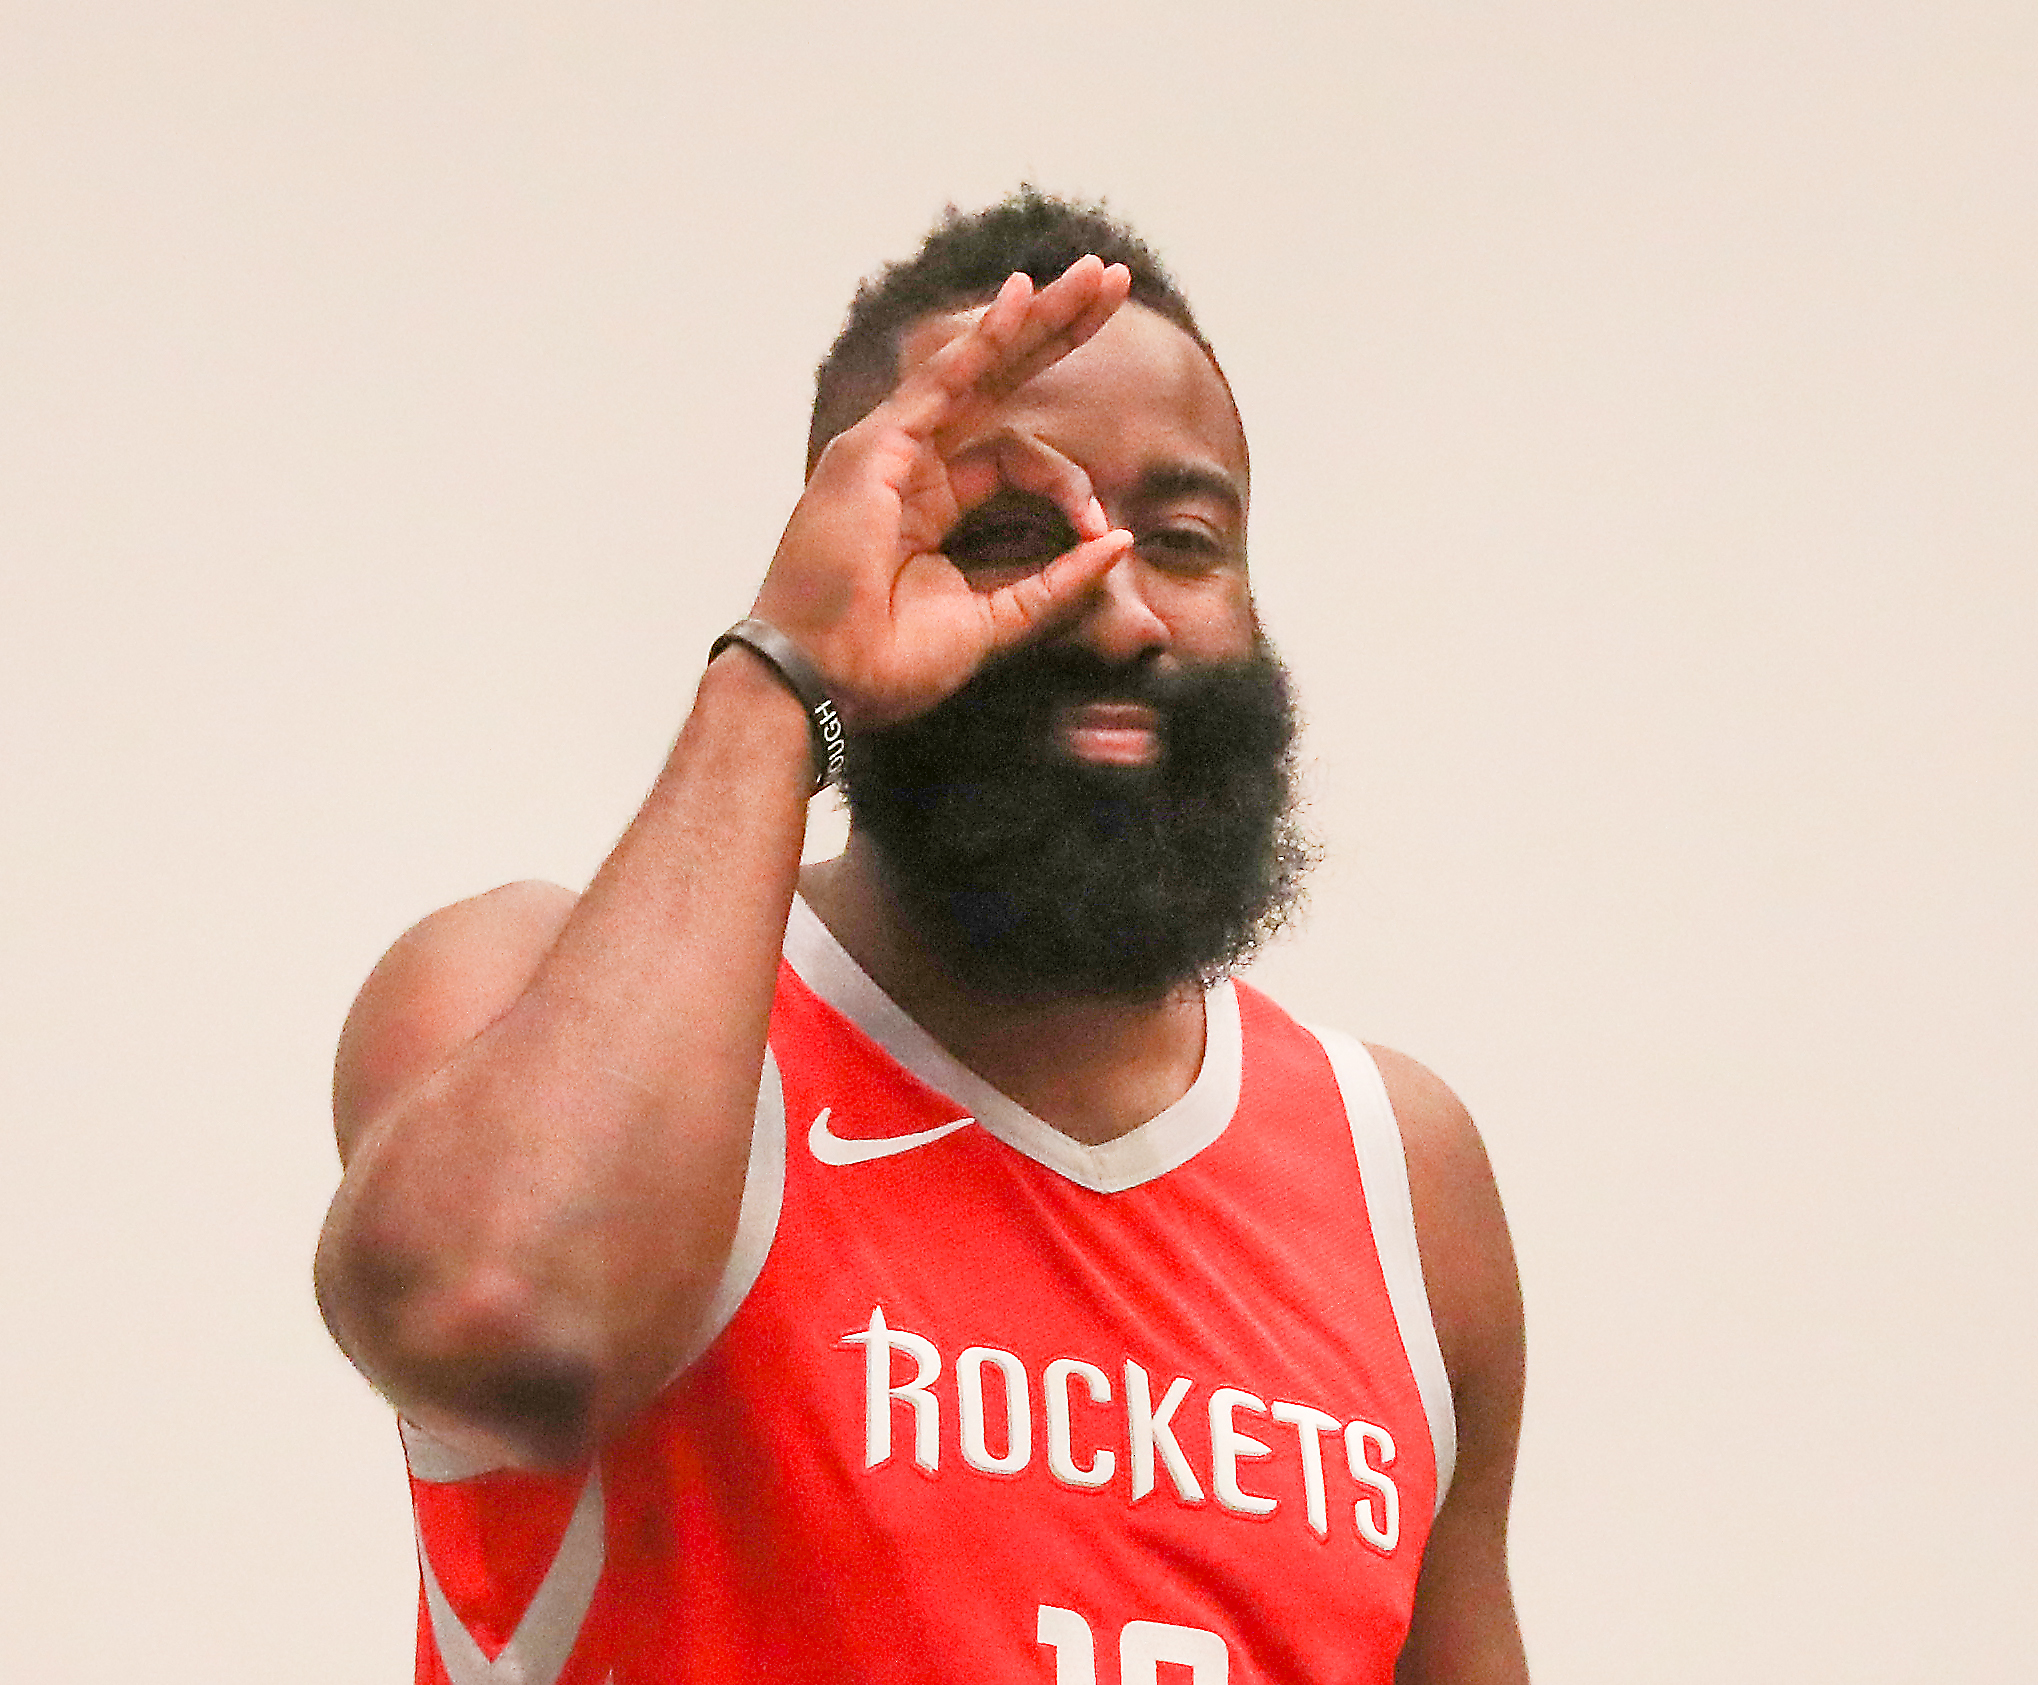 Solomon Even as MVP, Rockets James Harden as motivated as ever -  HoustonChronicle.com